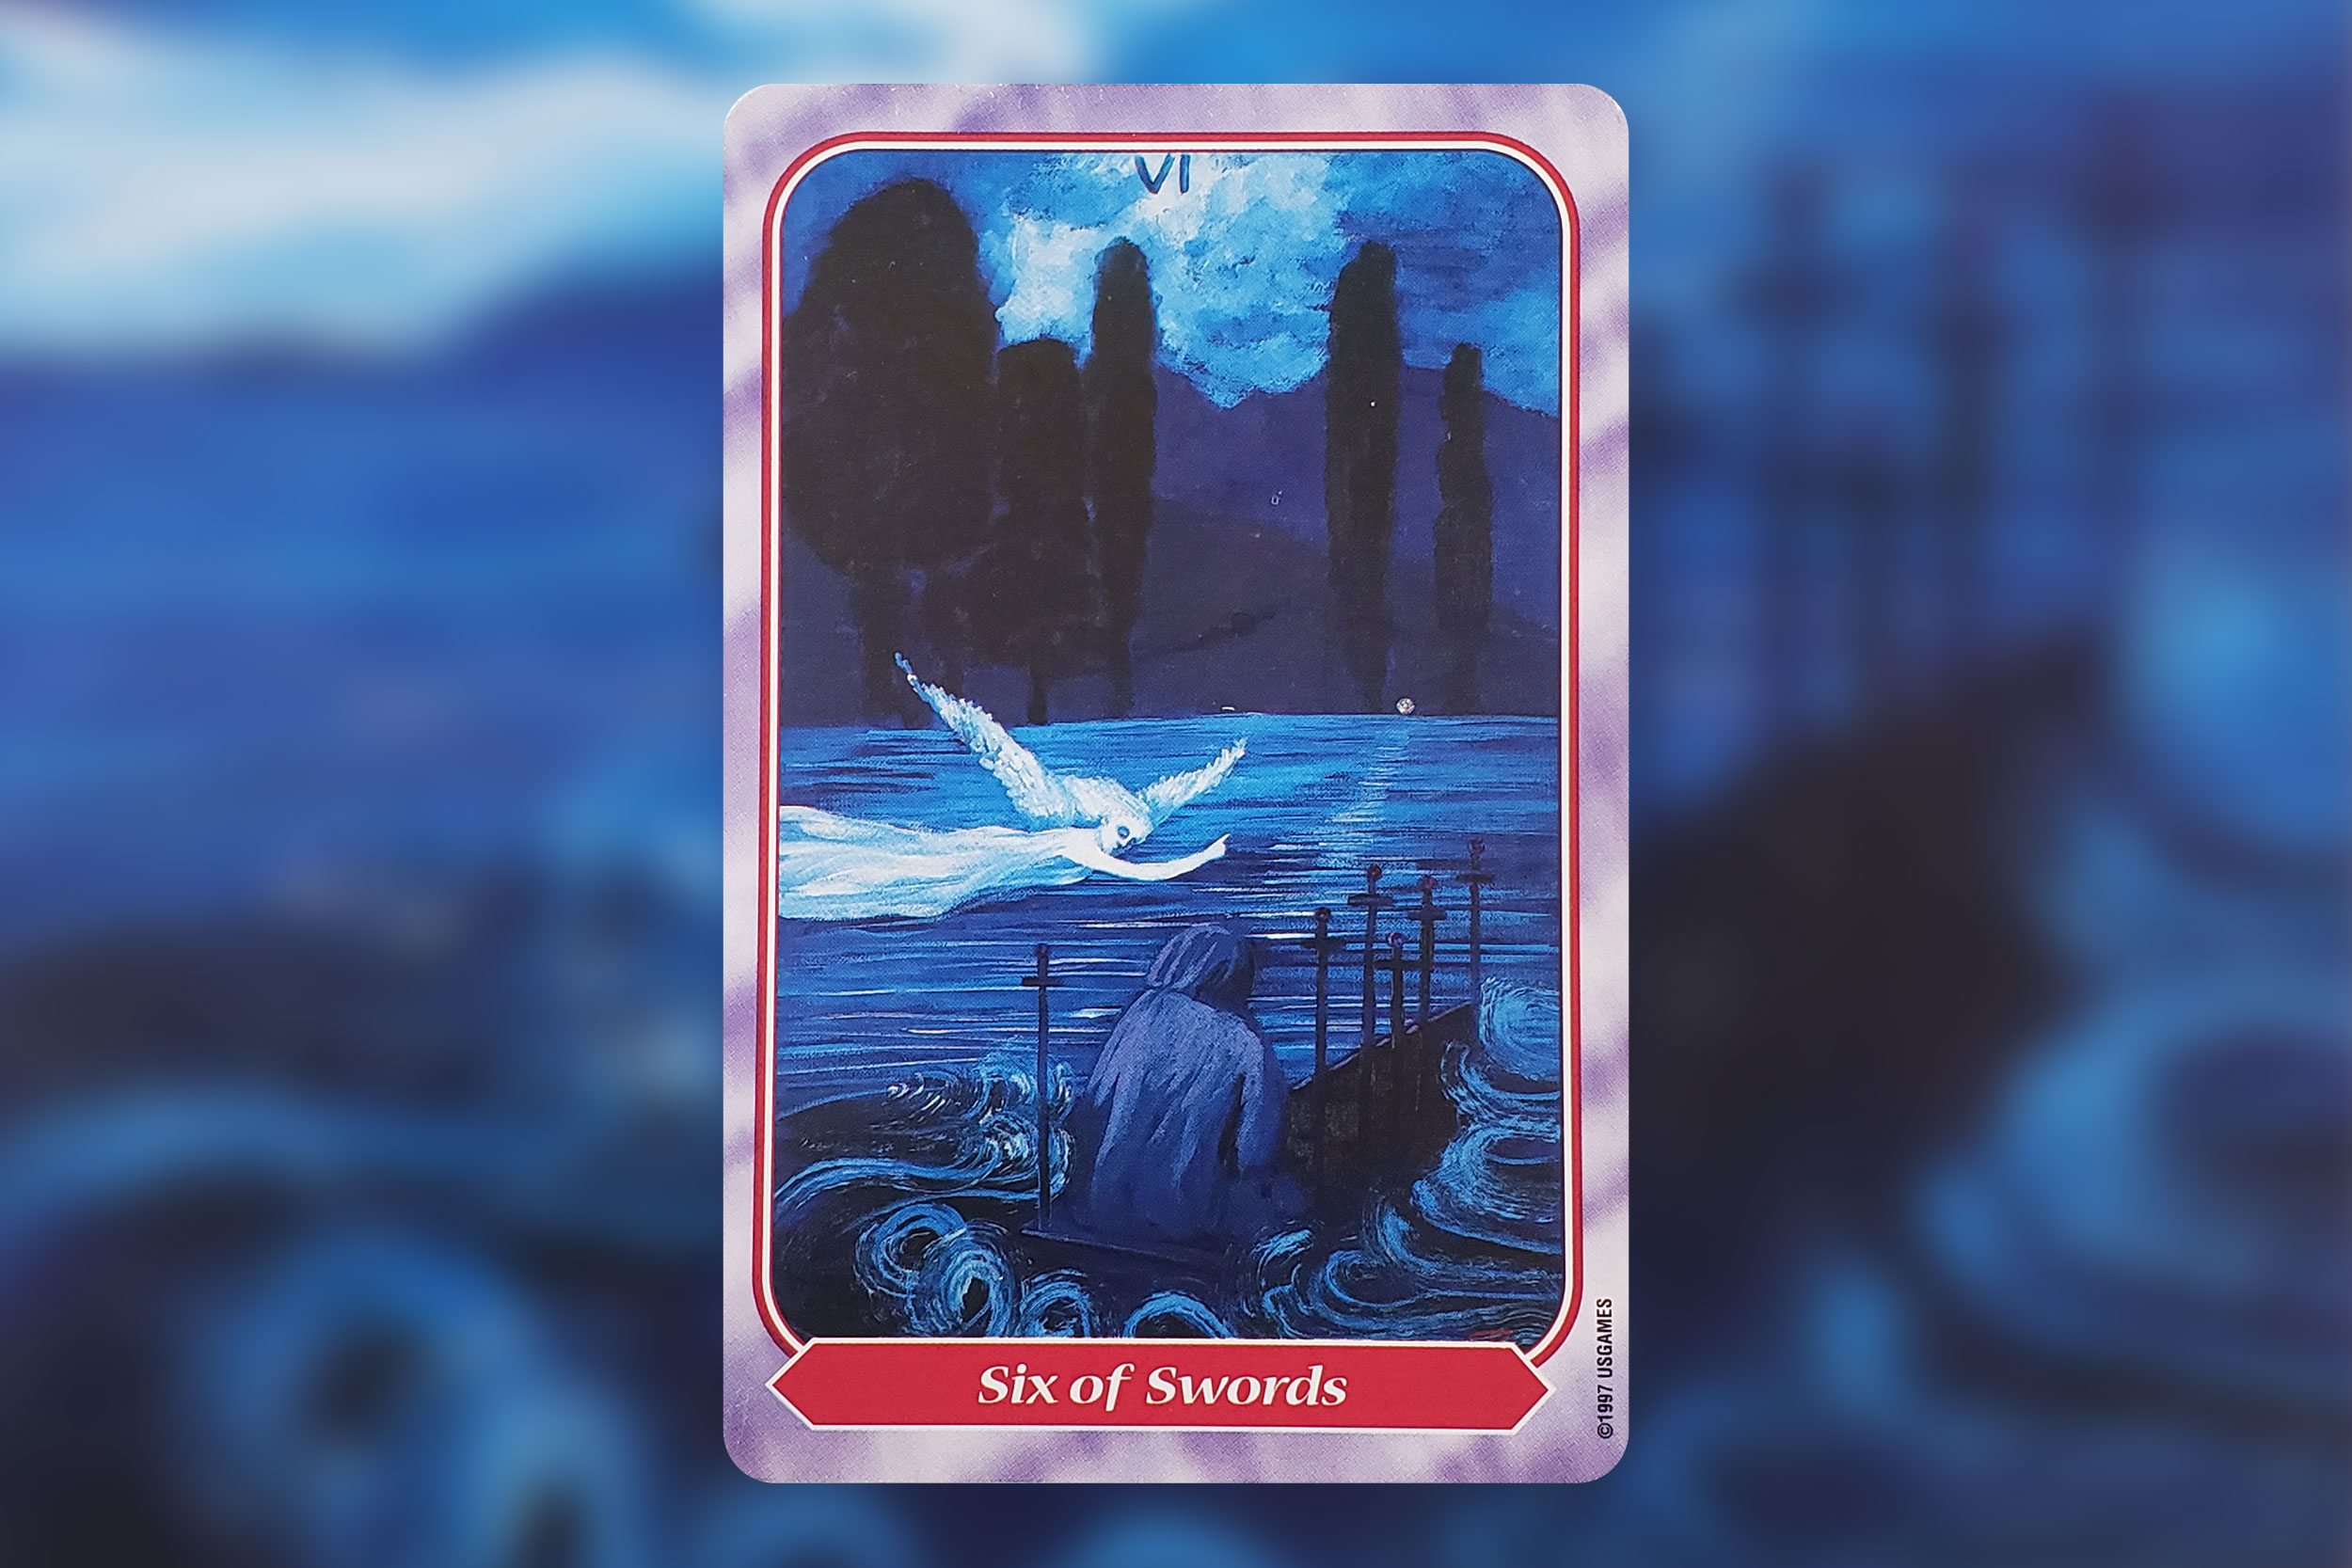 Image from Spiral Tarot by Kay Steventon, published by U.S. Games Systems, Inc. Copyright 1997, Used by permission.